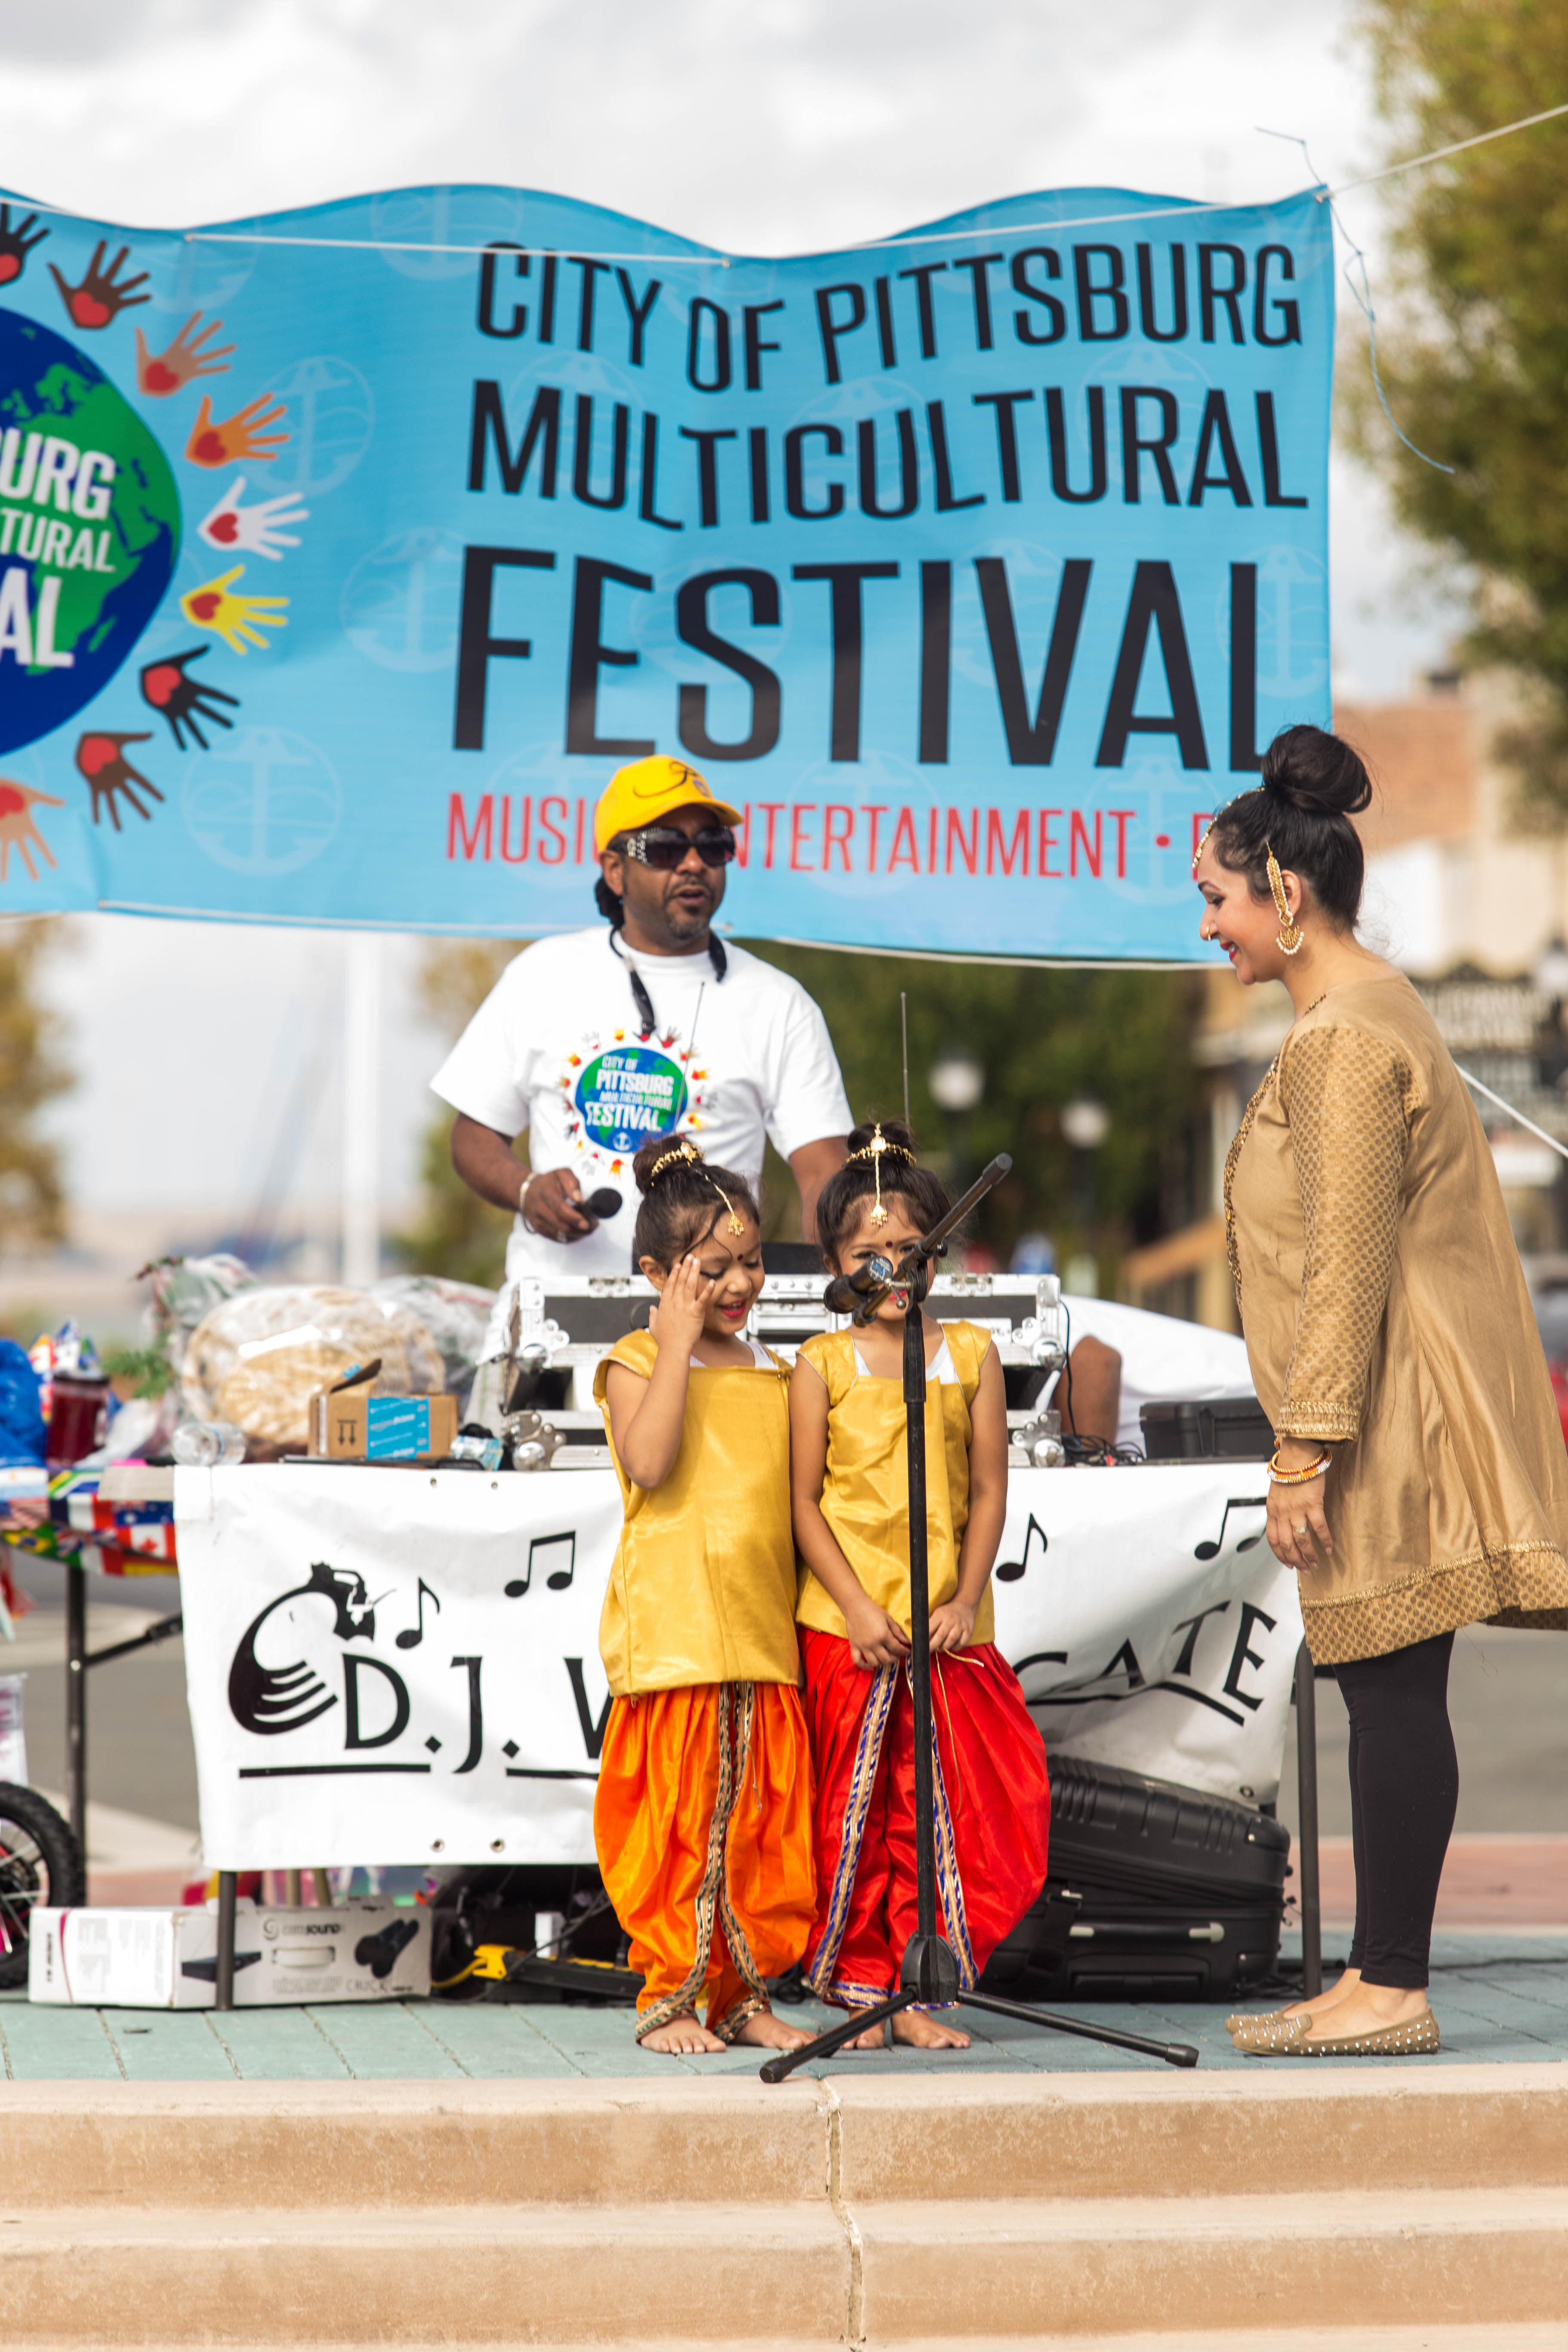 CITY_PITTSBURG_MULTICULTURAL_OCTOBER_2016 (653)